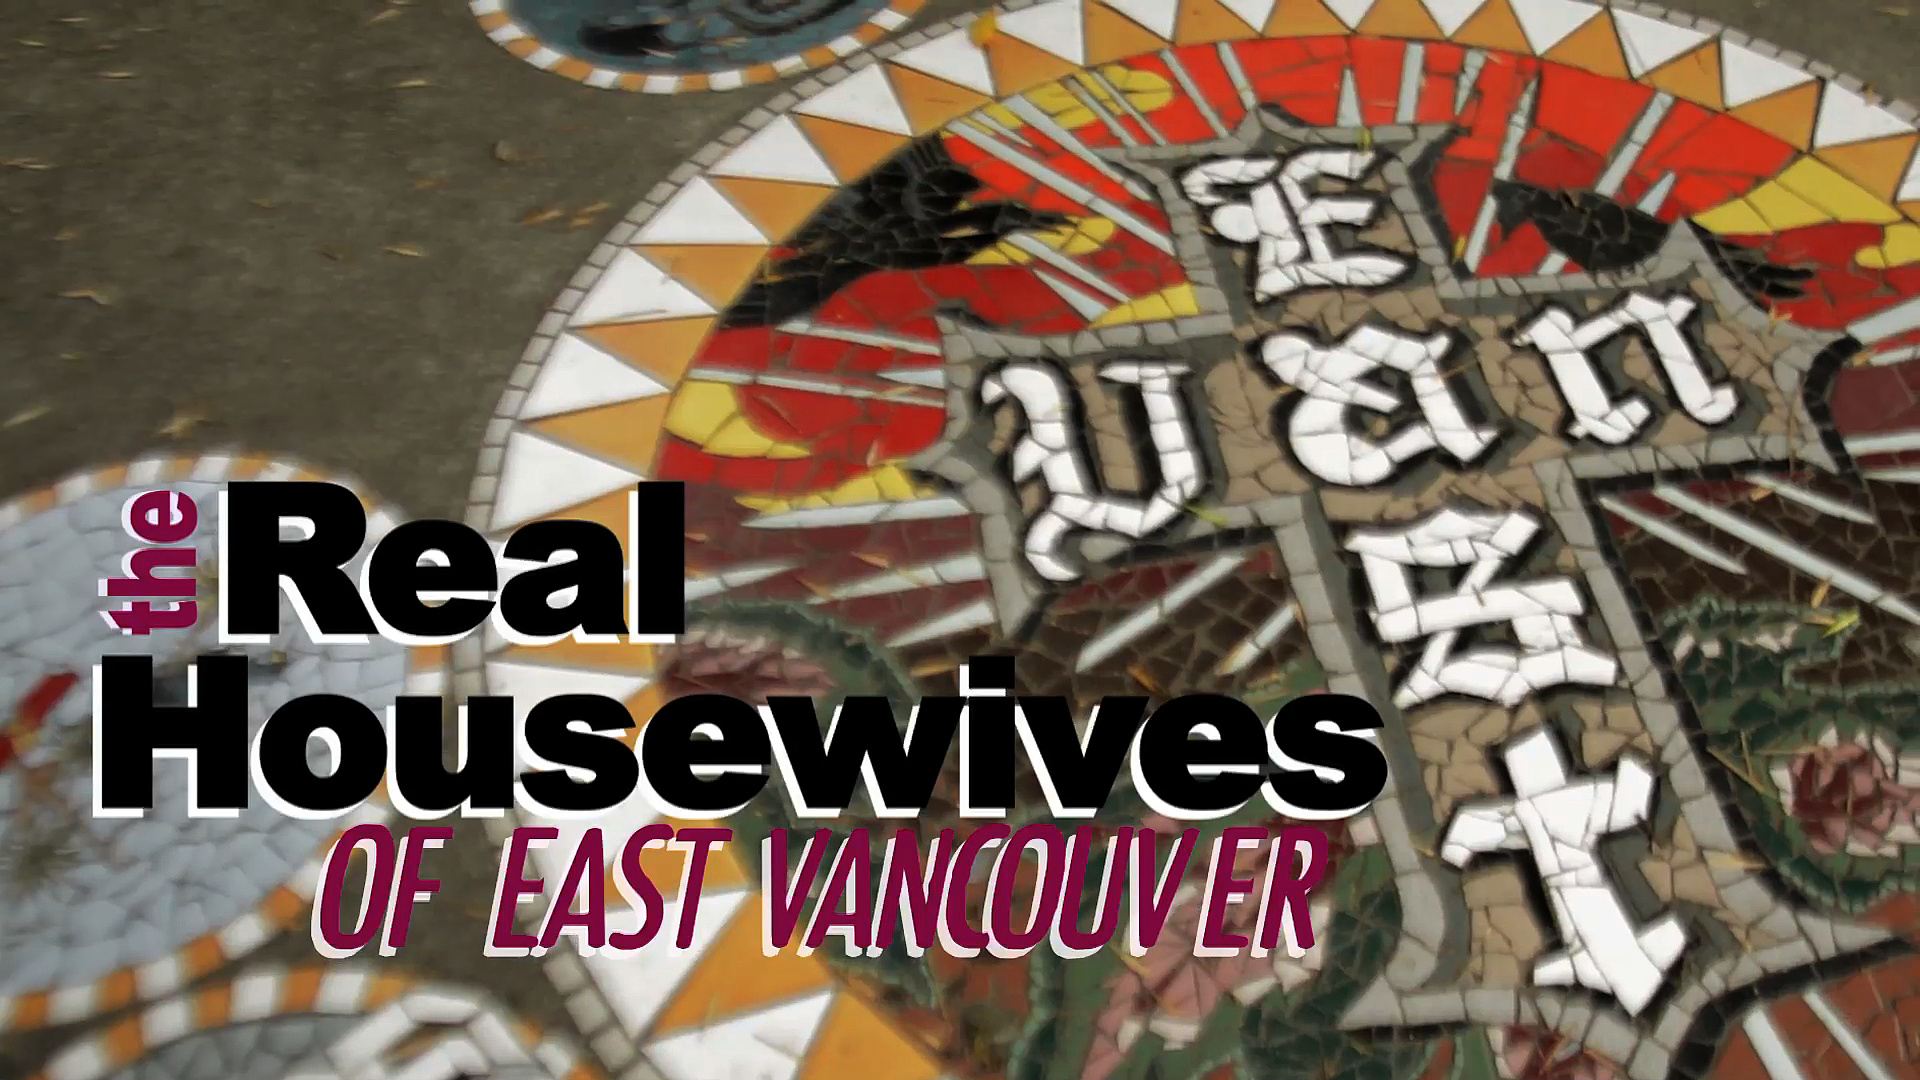 The Real Housewives of East Vancouver